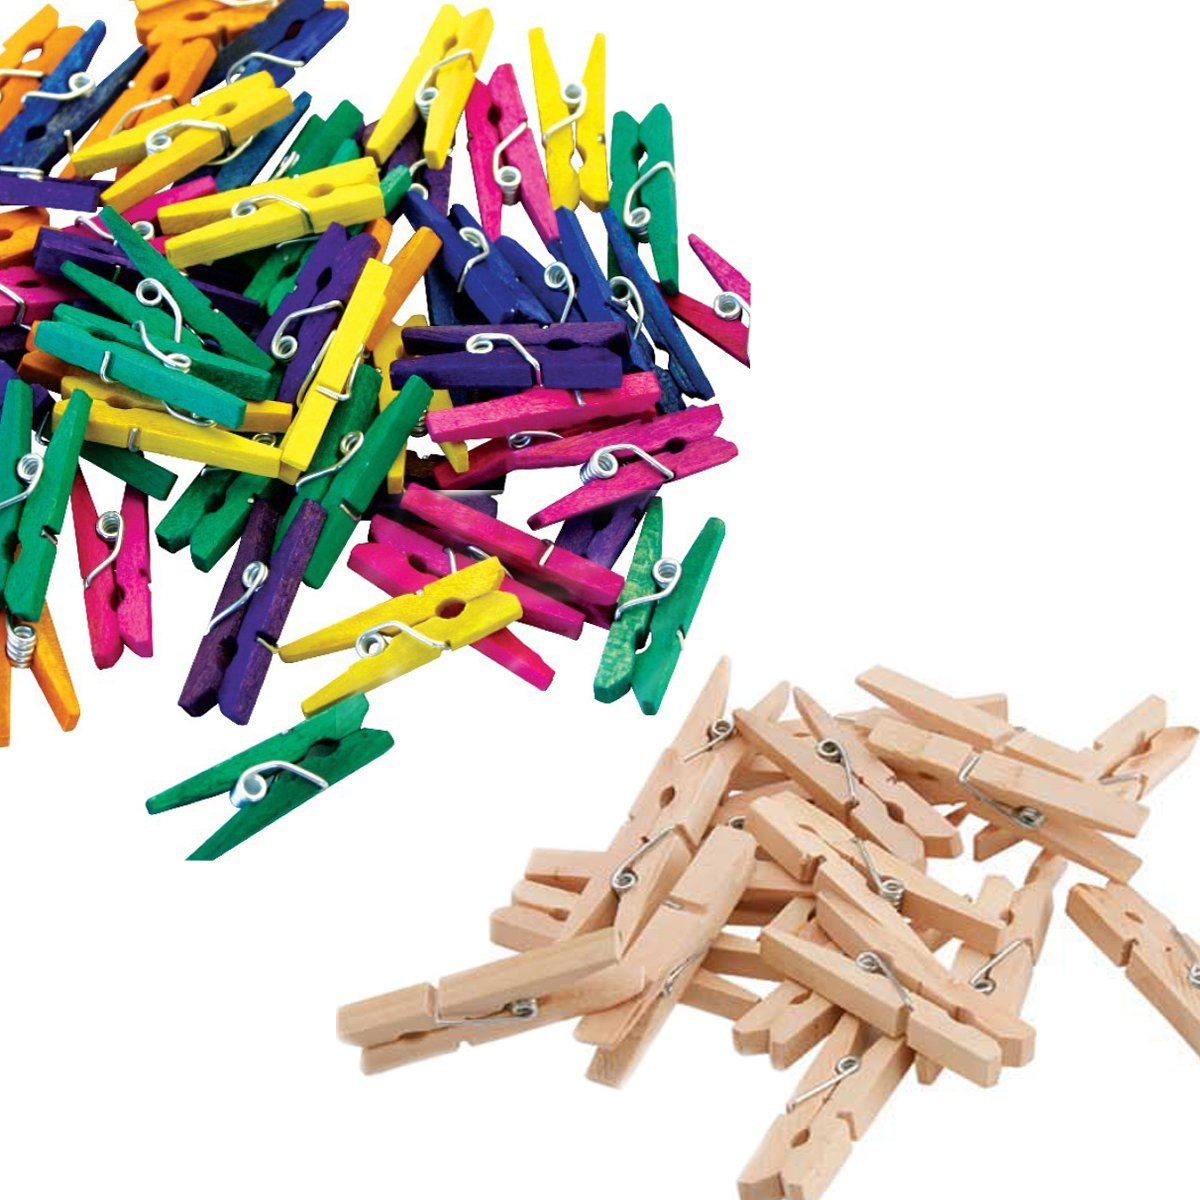 Comtechlogic® CM-4070 Wooden Coloured Mini Colour Craft Wedding Arts Crafts Colourful 2.5cm Mini Wooden Pegs - Ideal for Hanging Photos, clothes, kids arts and crafts (Natural)